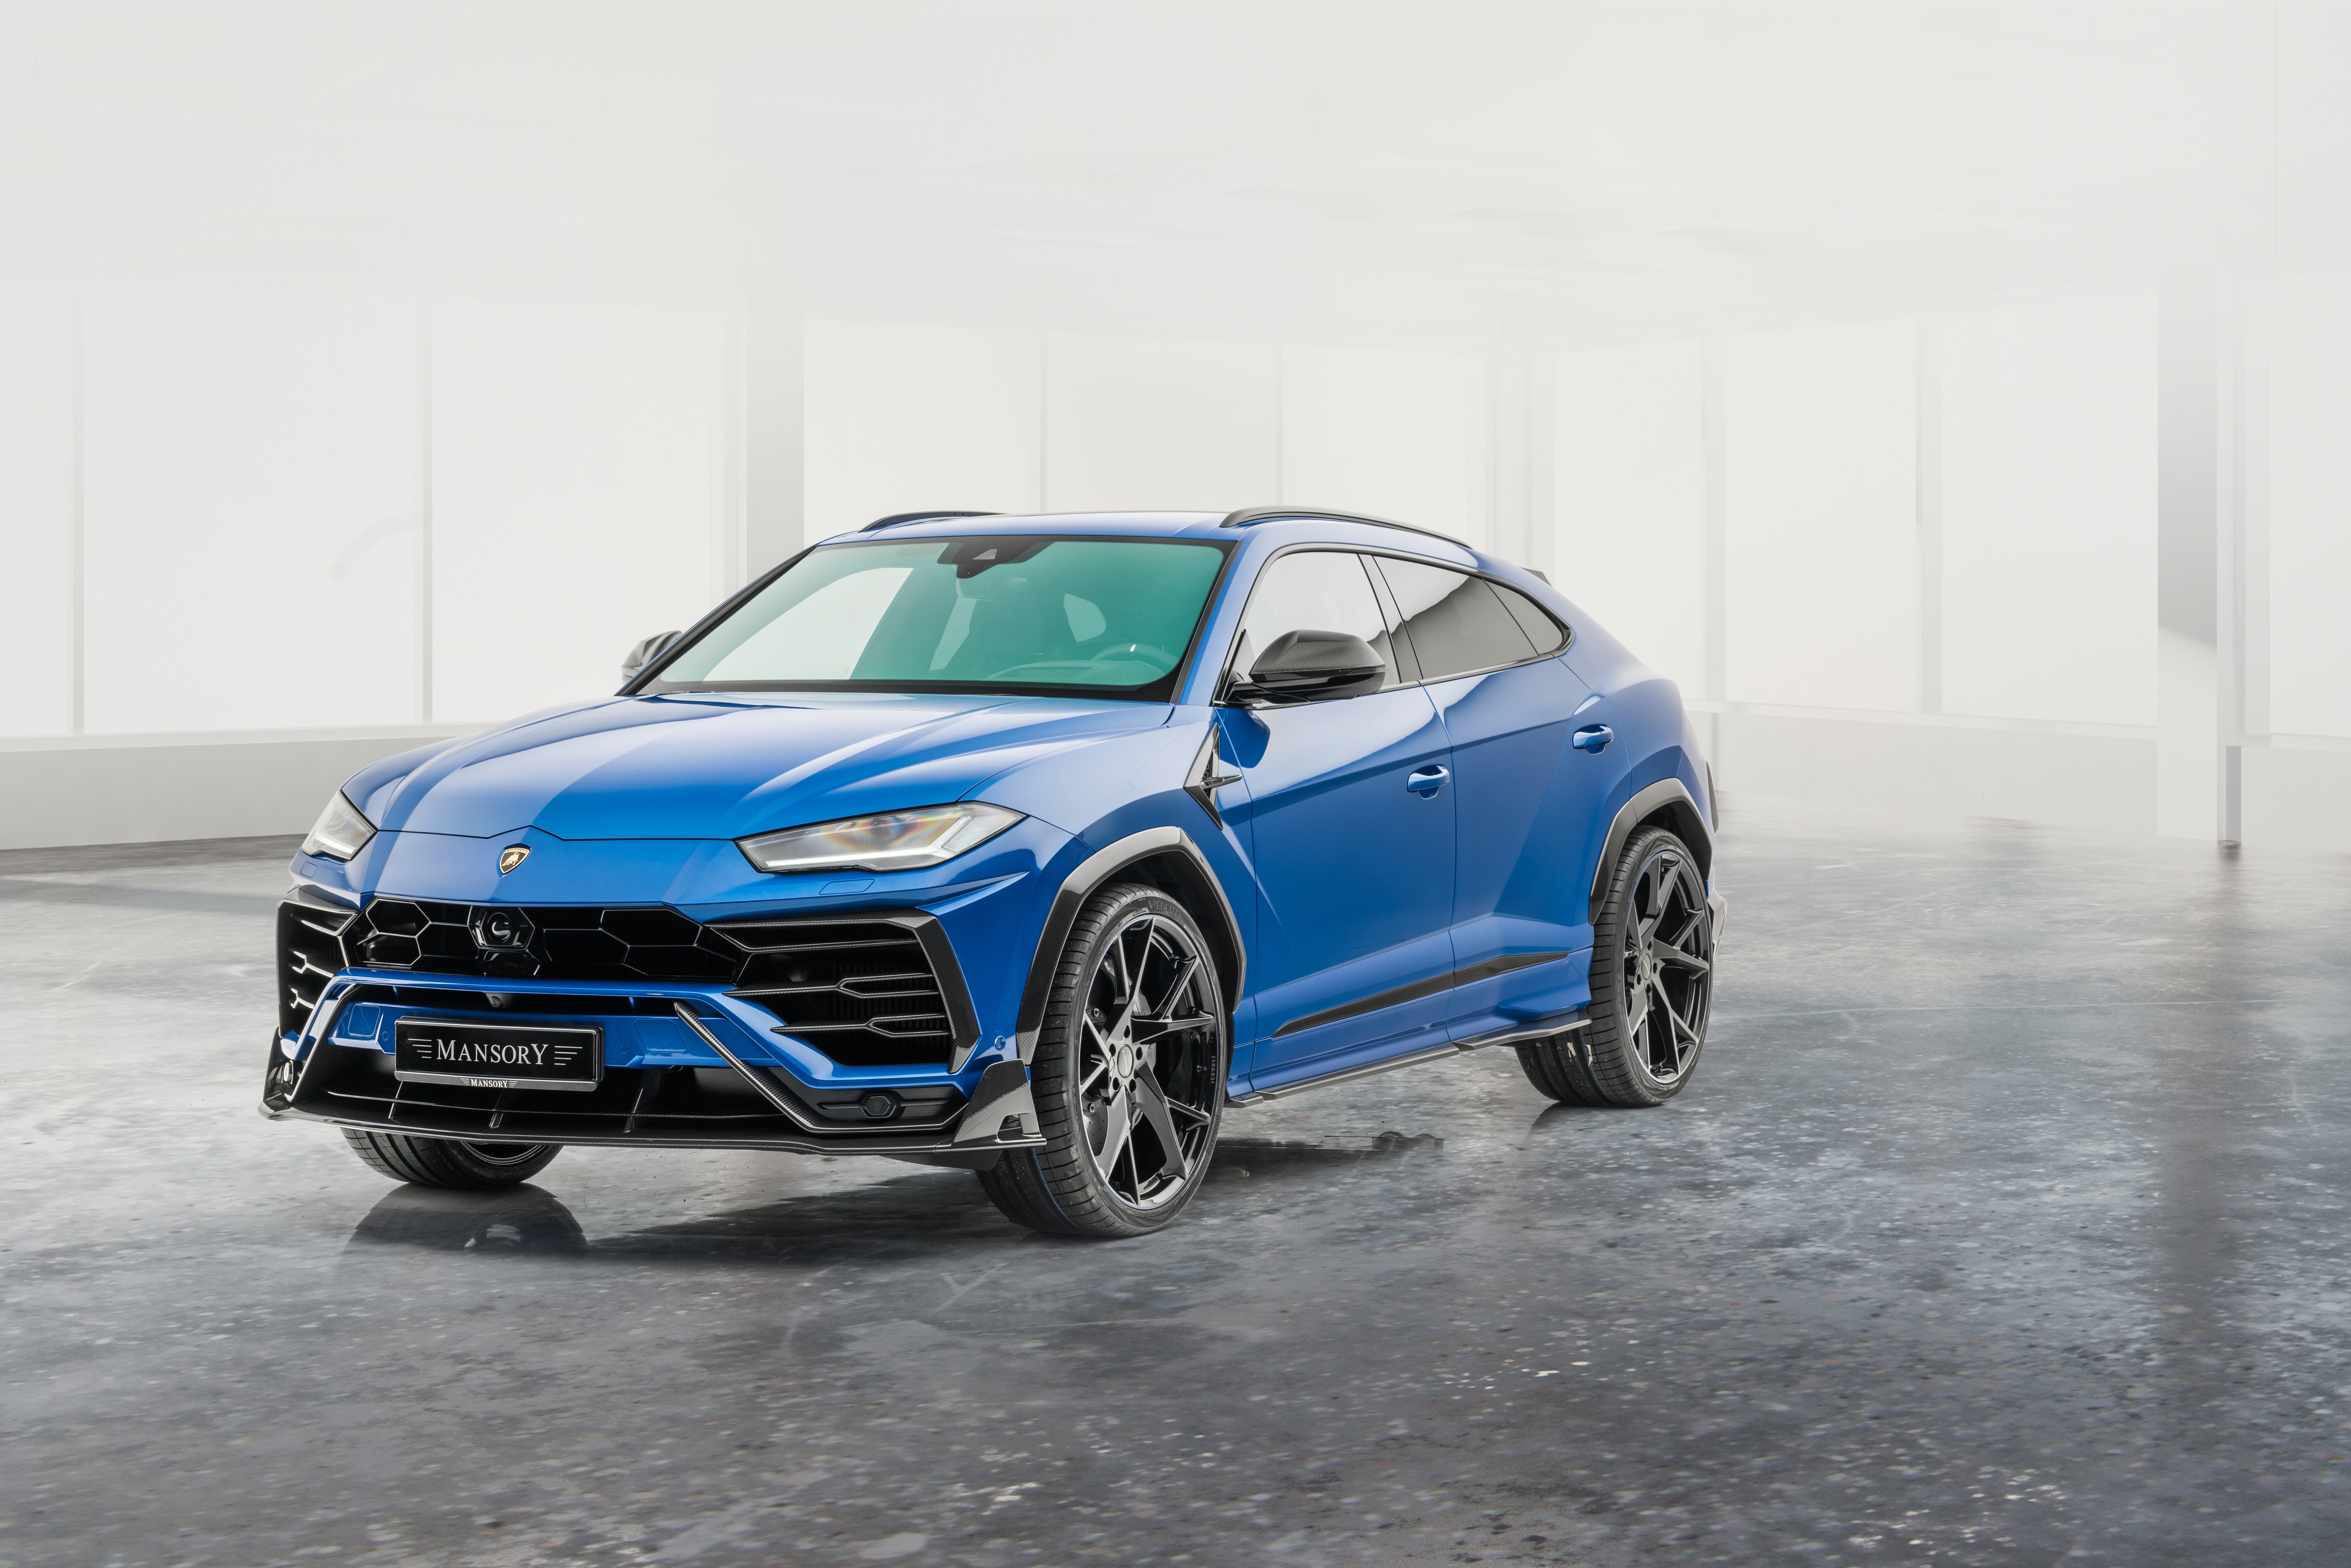 Mansory Lamborghini Urus Soft Kit 8k Hd Cars 4k Wallpapers Images Backgrounds Photos And Pictures